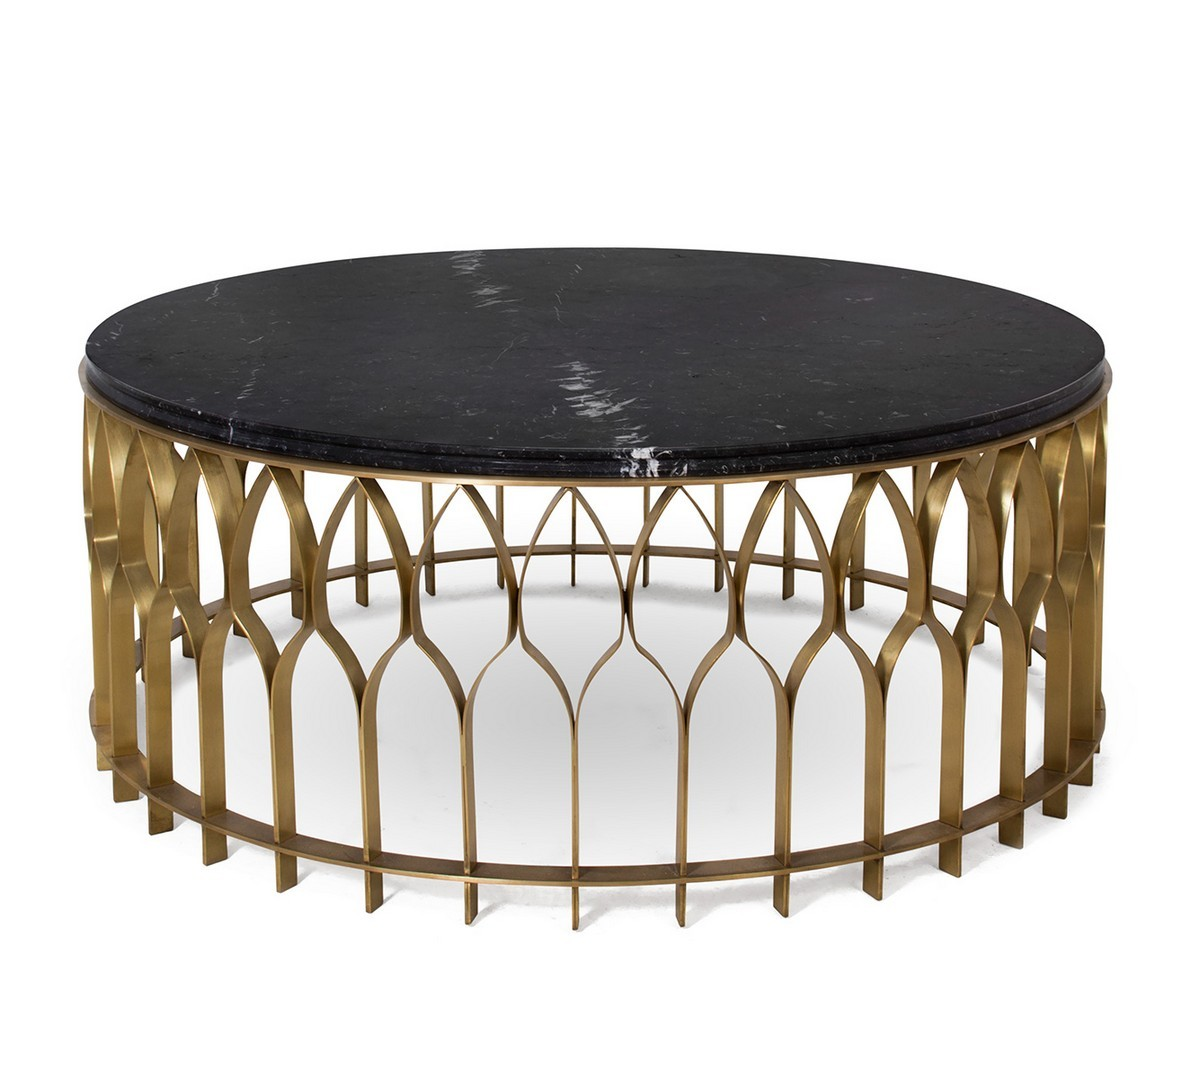 Top Contemporary Coffee Tables contemporary coffee tables Top Contemporary Coffee Tables mecca